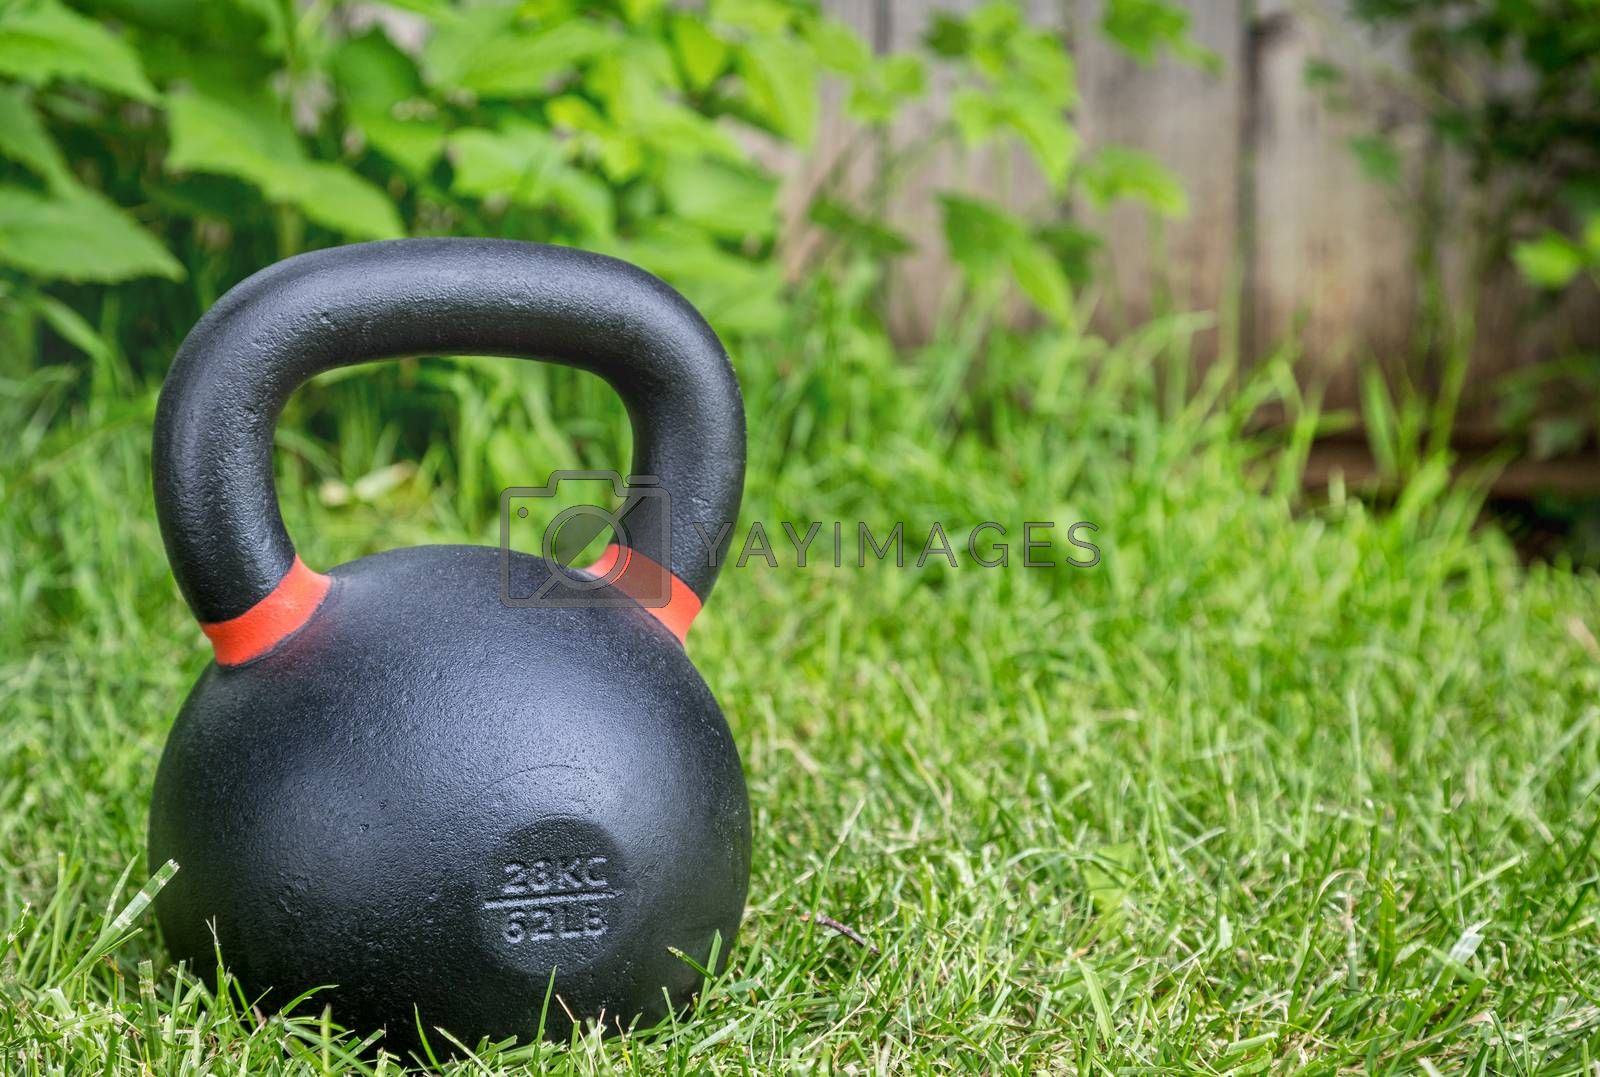 heavy iron competition kettlebell (62lb - 28 kg) on green grass in a backyard - outdoor fitness concept